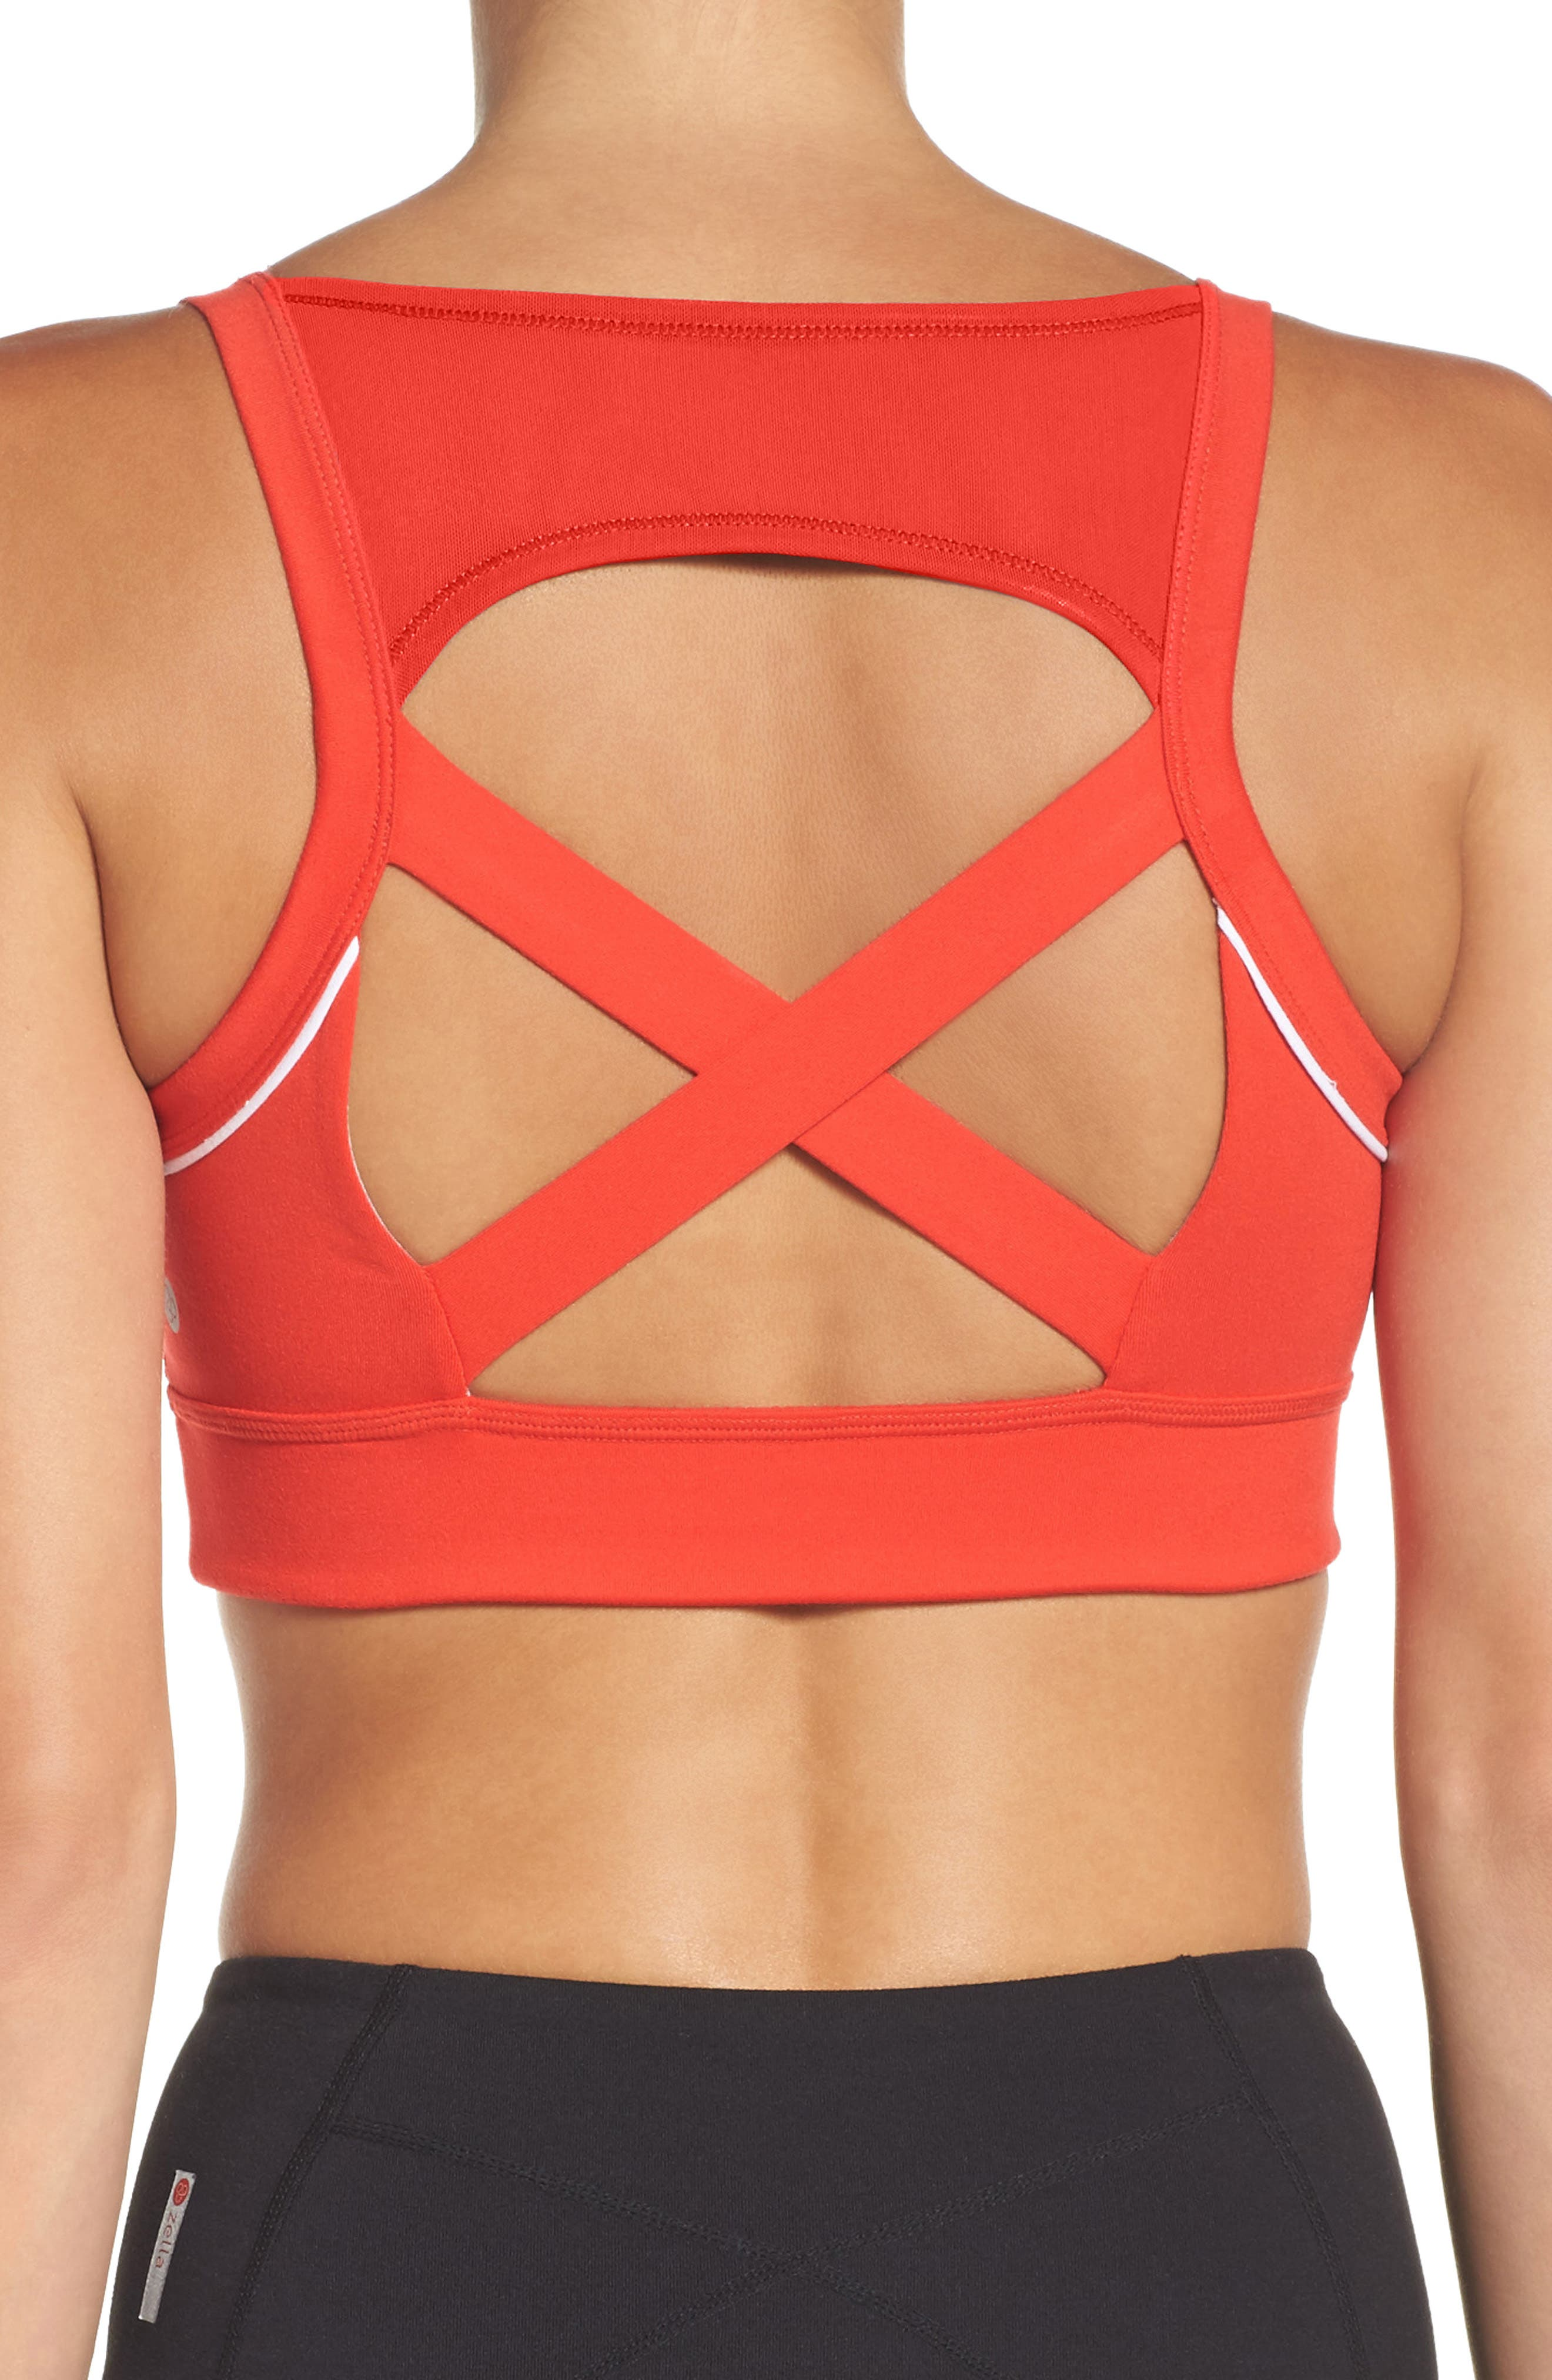 Harness Sports Bra,                             Alternate thumbnail 3, color,                             Red Fiery